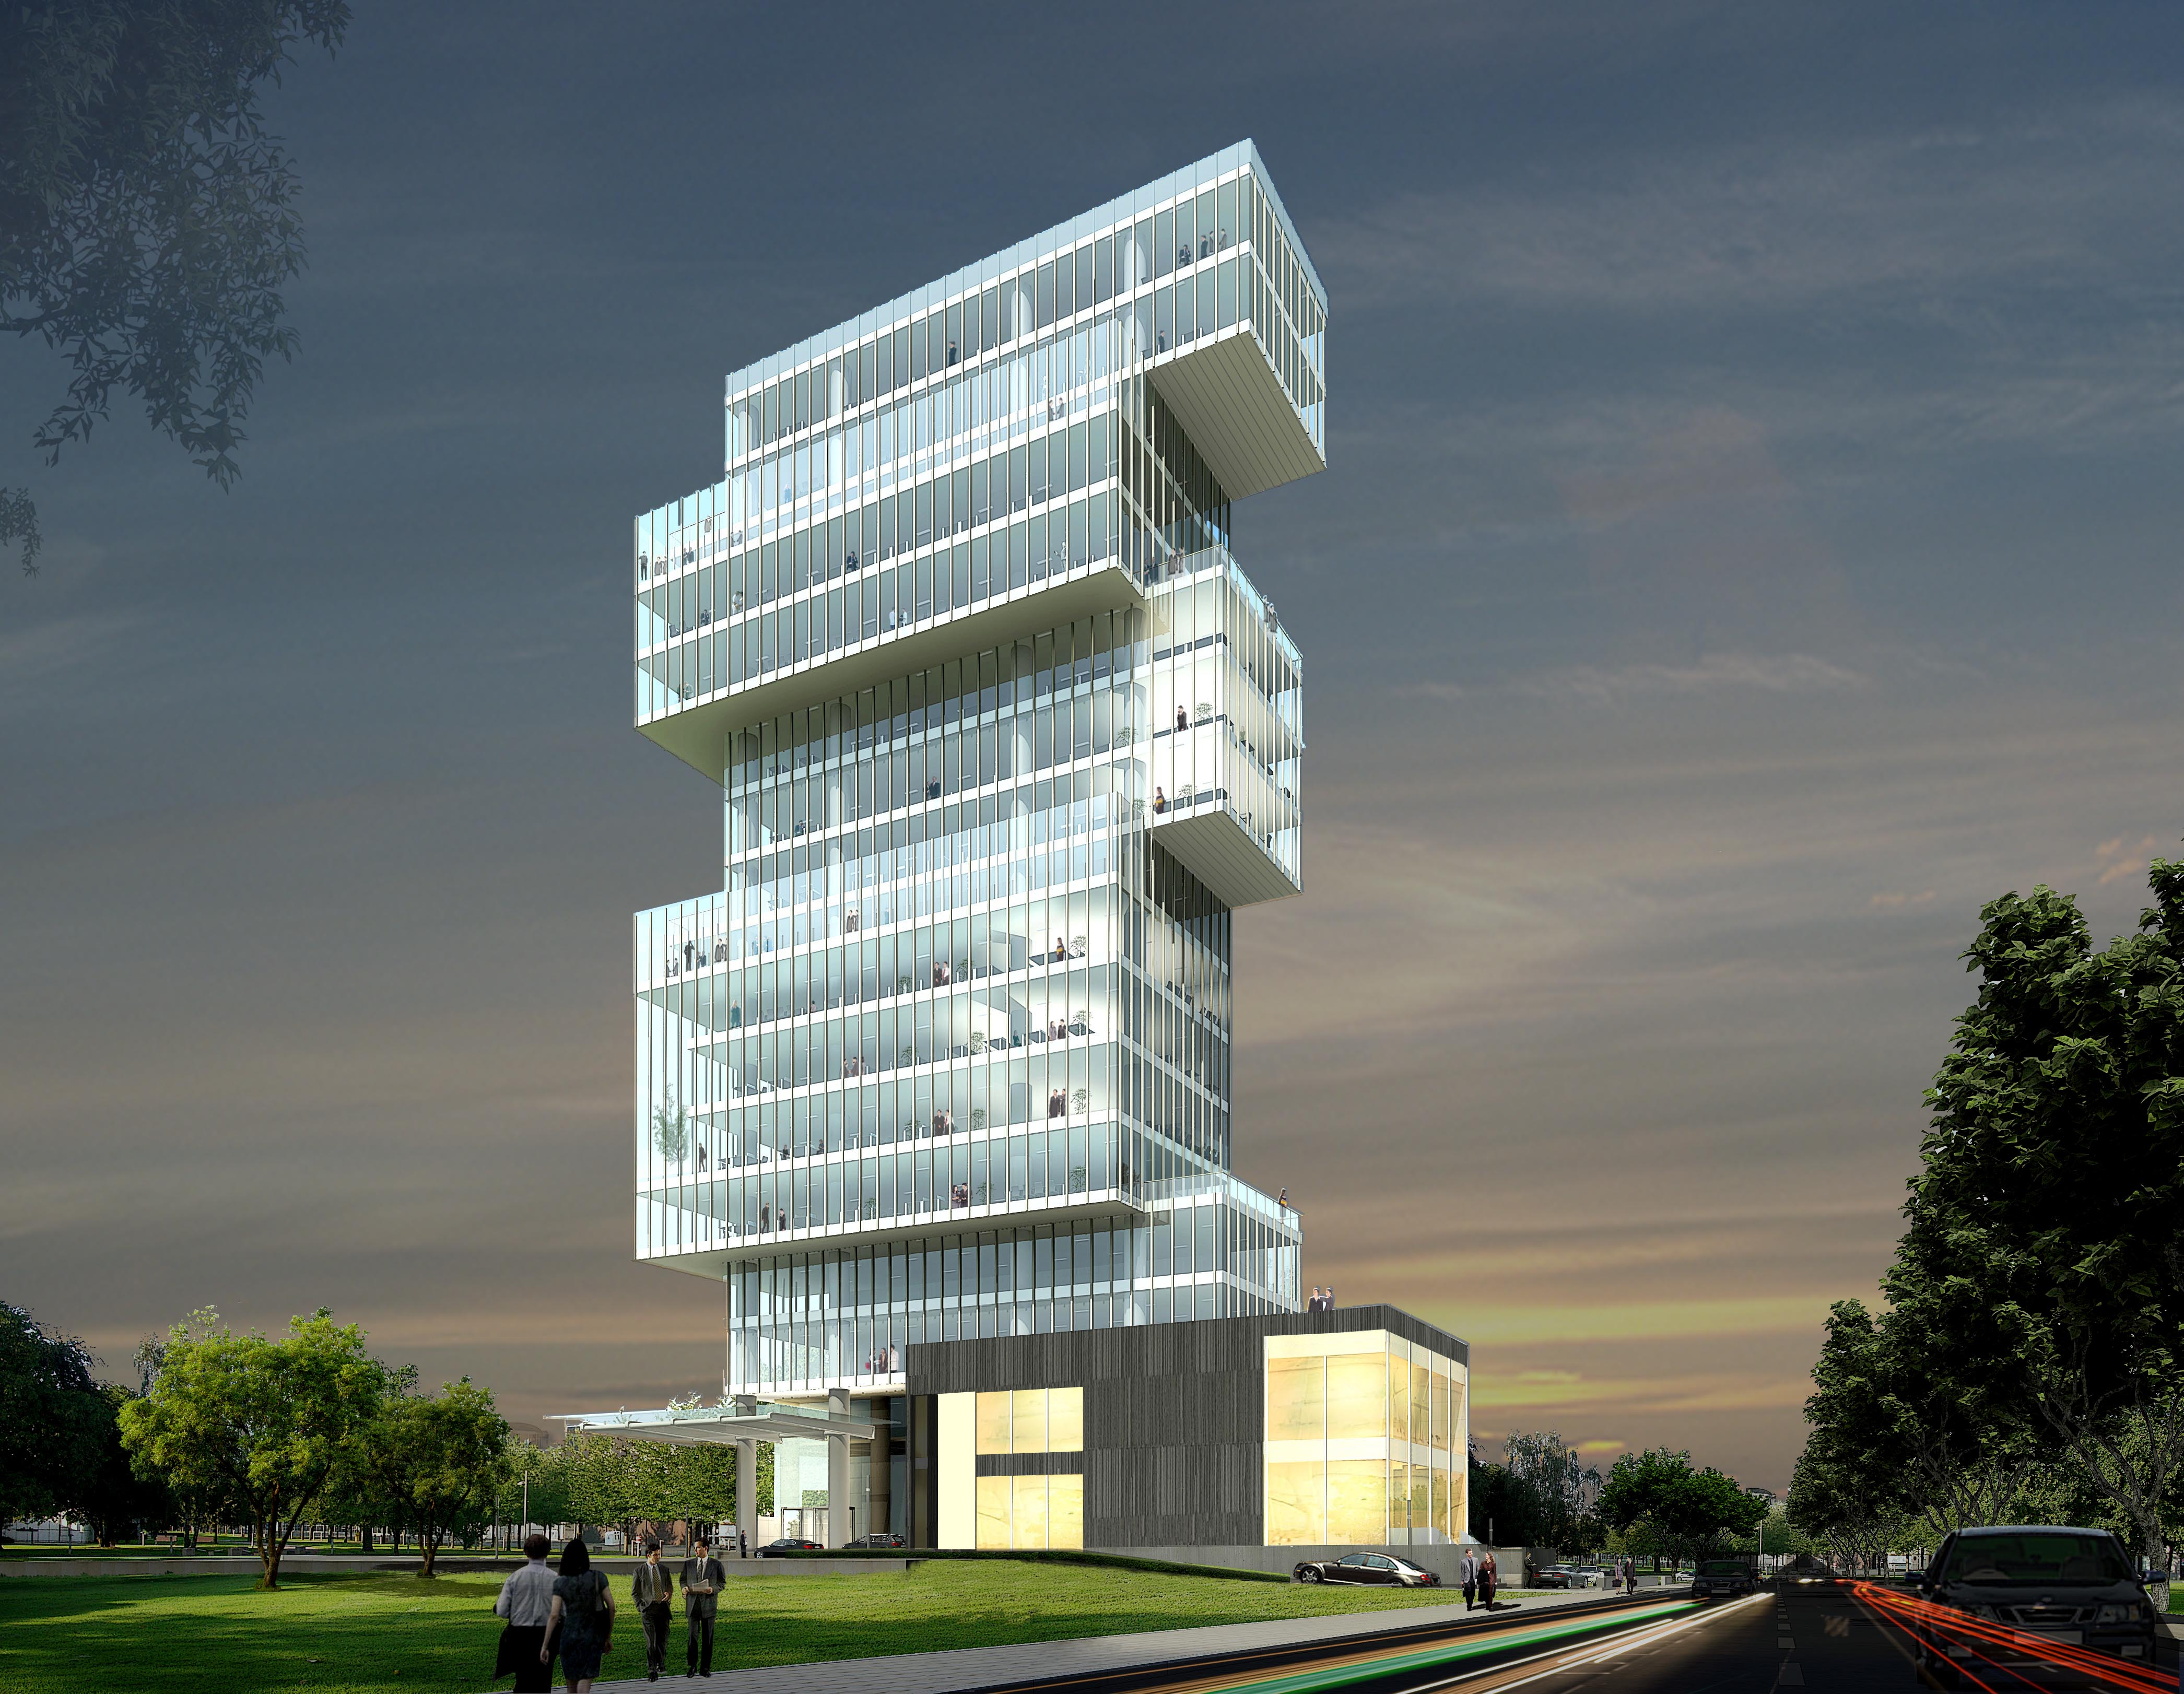 Commercial building design commercial building subhash - Asian Night Elevation View